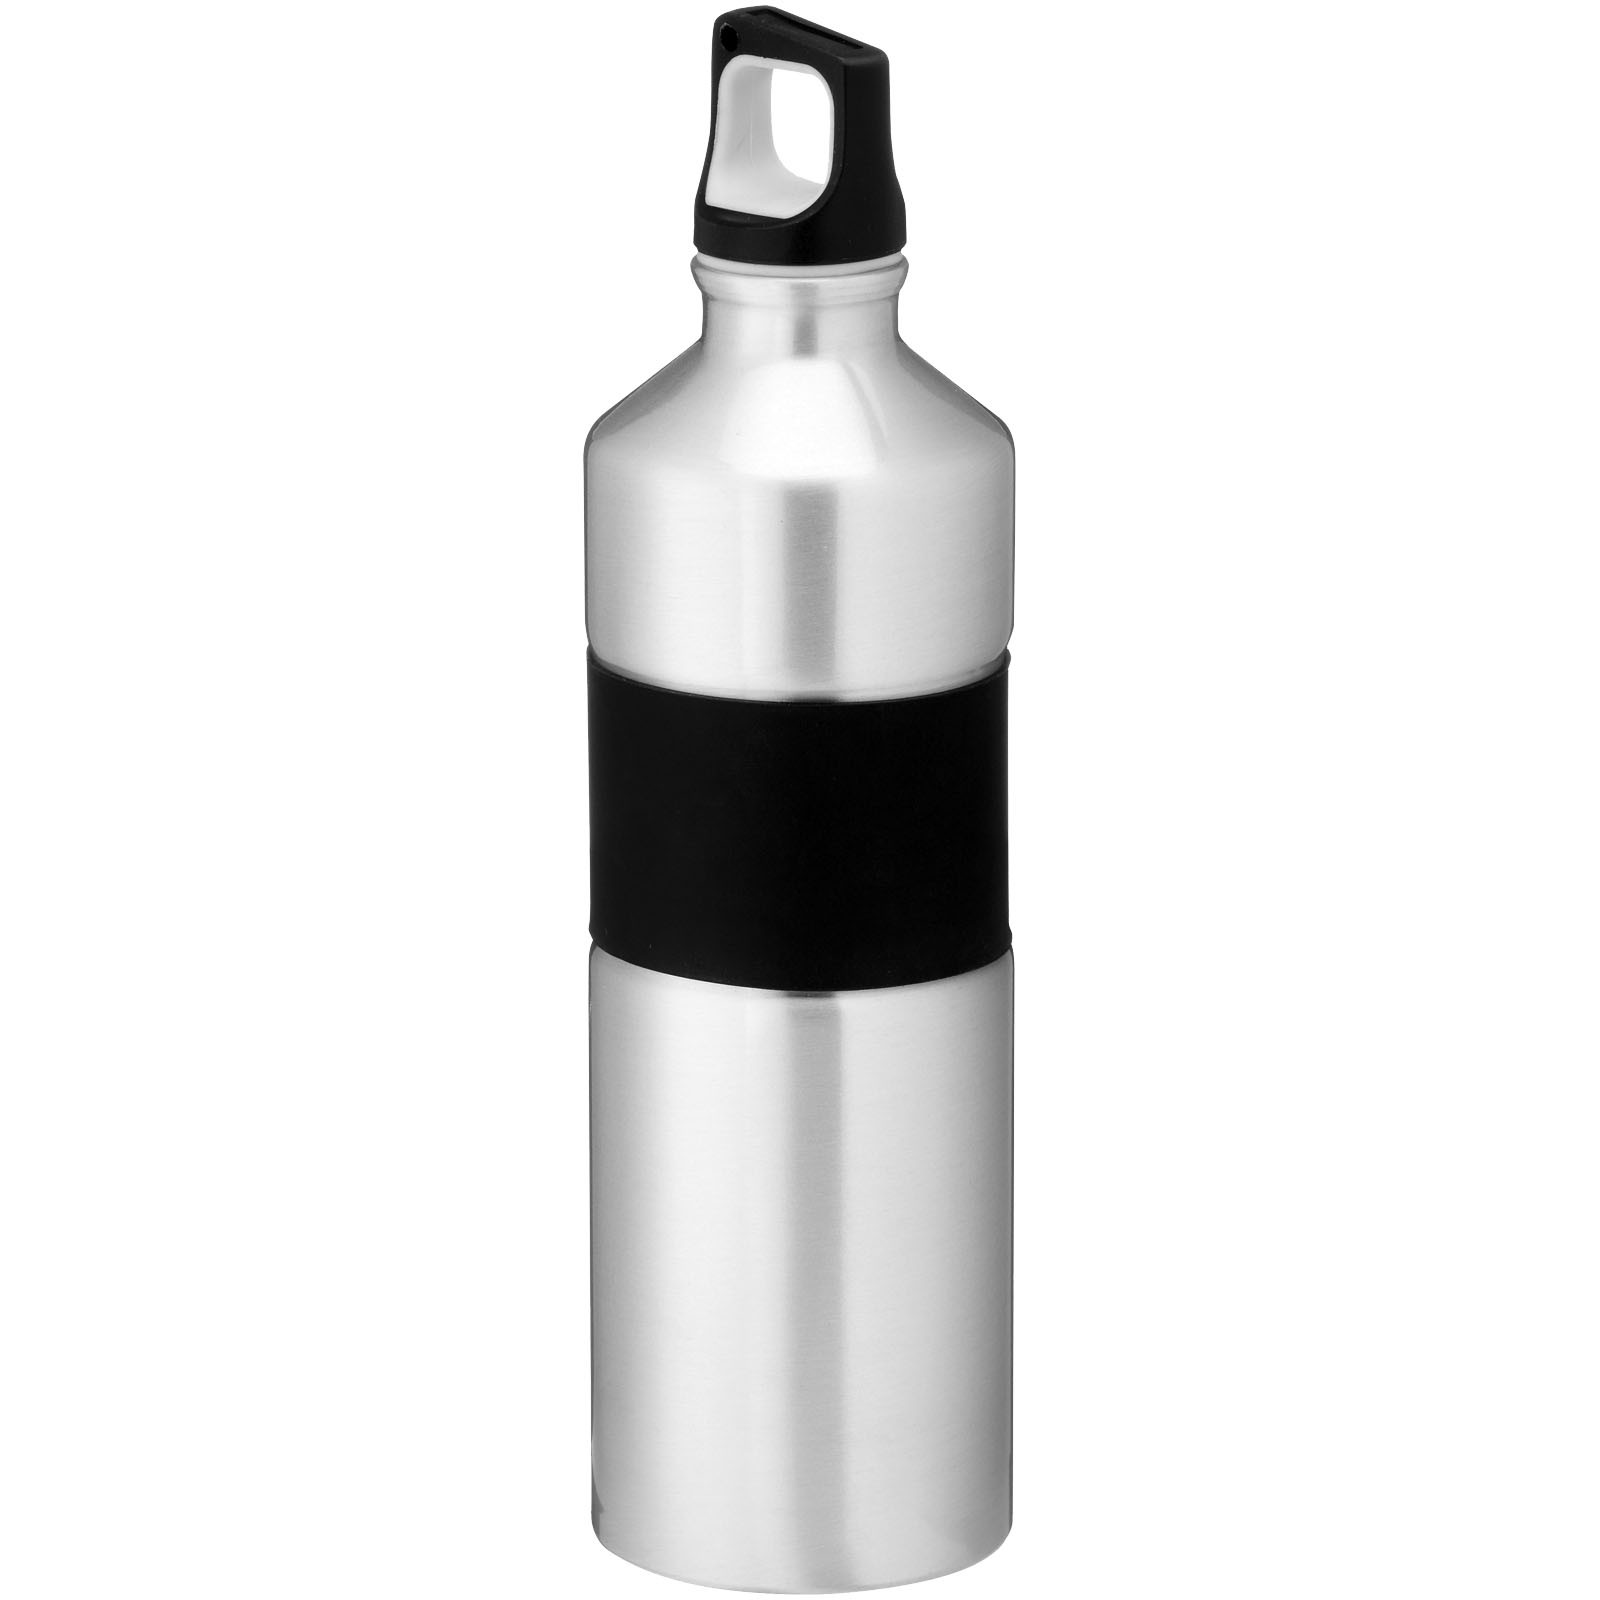 Nassau 750 ml sport bottle - Silver